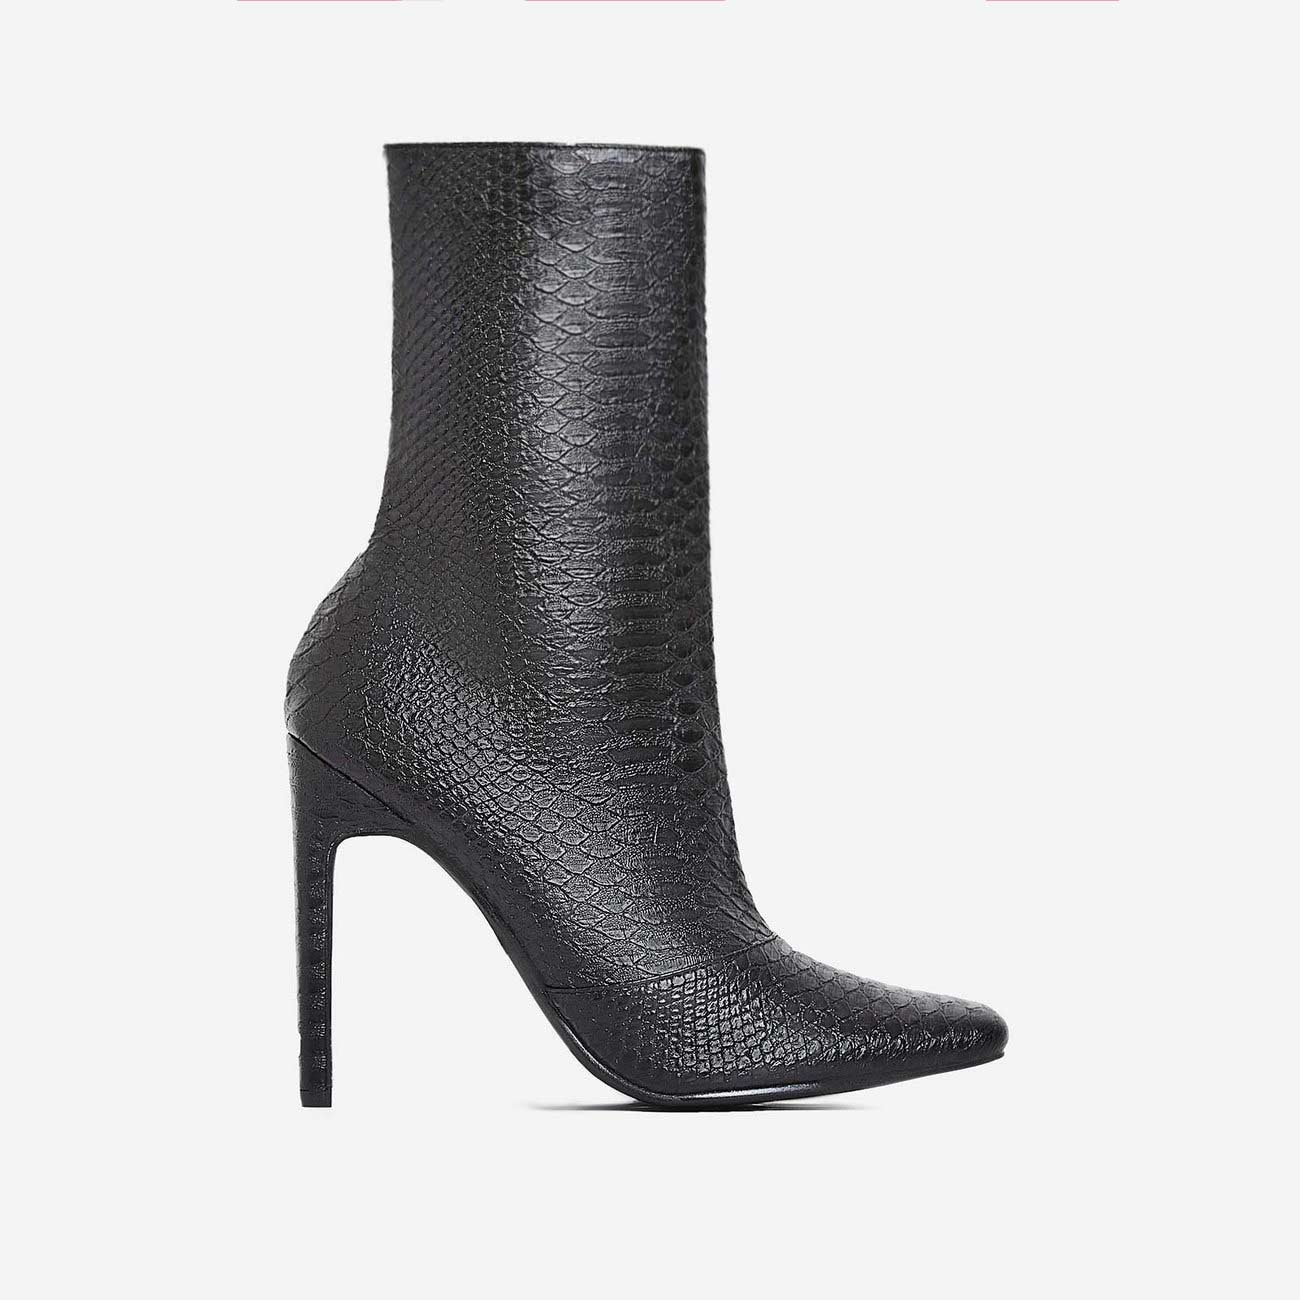 Boomslang Flat Heel Ankle Boot In Black Snake Print Faux Leather